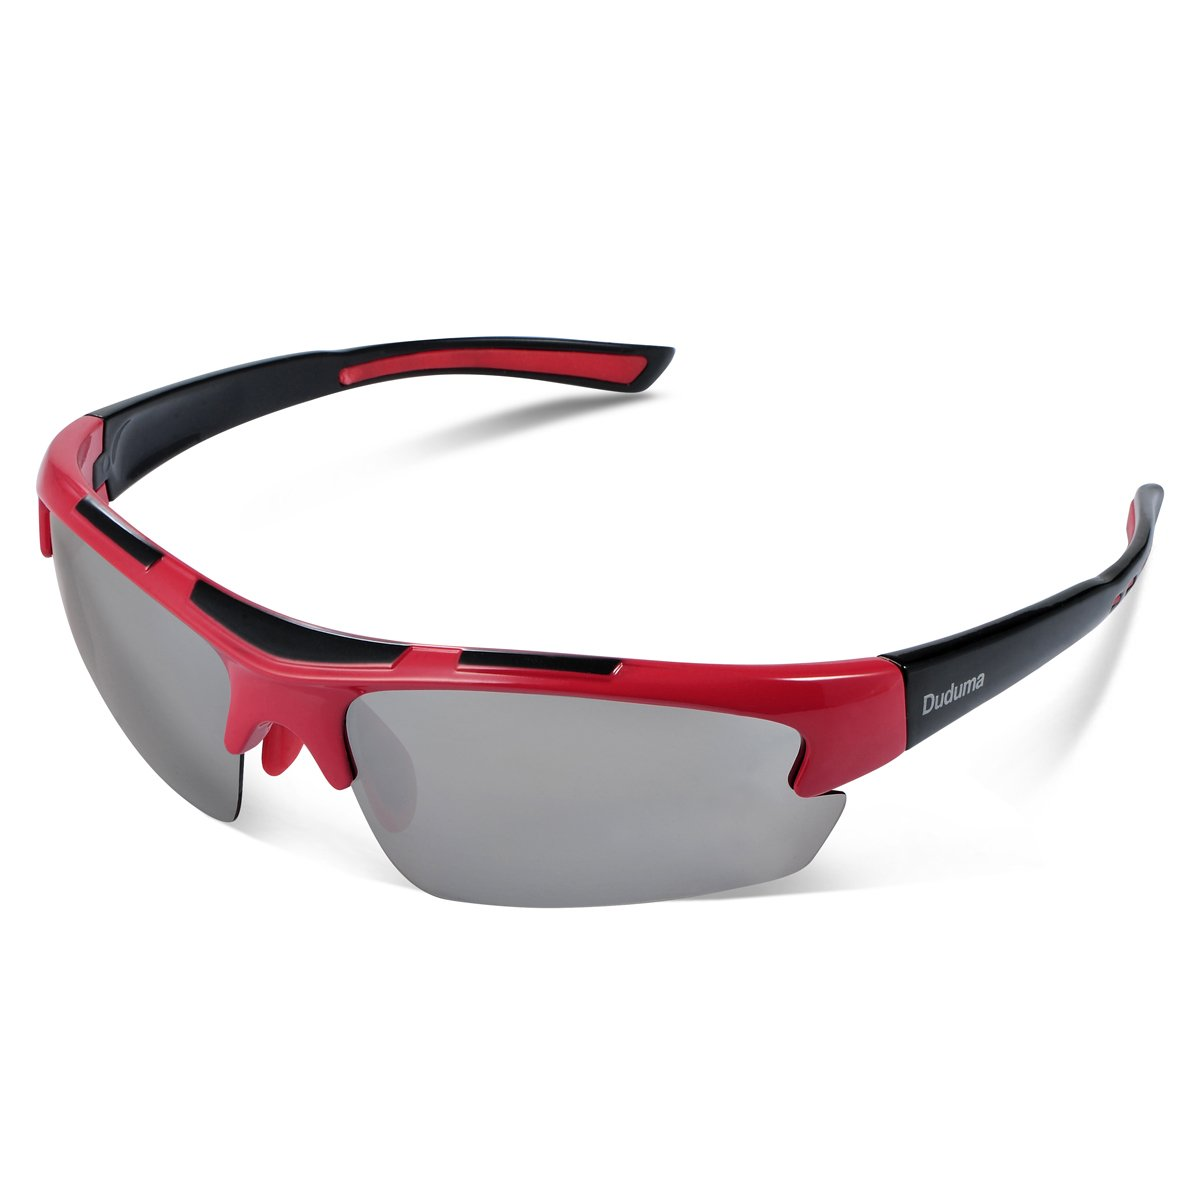 Duduma Polarized Designer Fashion Sports Sunglasses for Baseball Cycling Fishing Golf Tr62 Superlight Frame (red/black) by Duduma